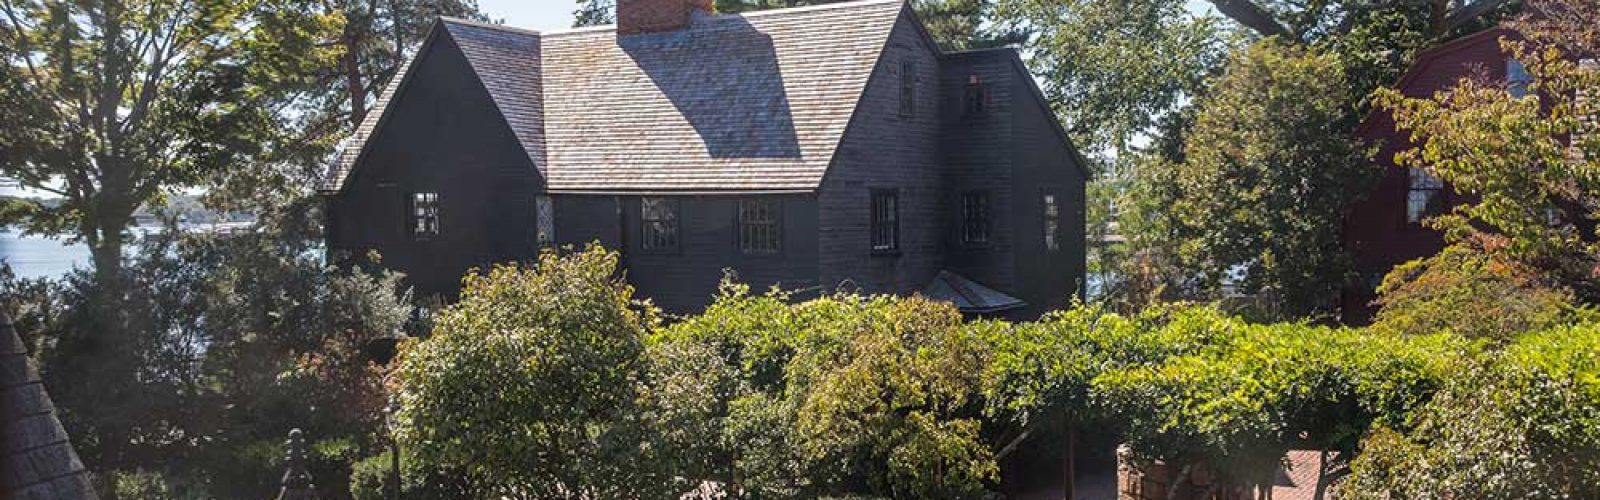 Photo of Garden Side View of the House of Seven Gables | Annual Fund